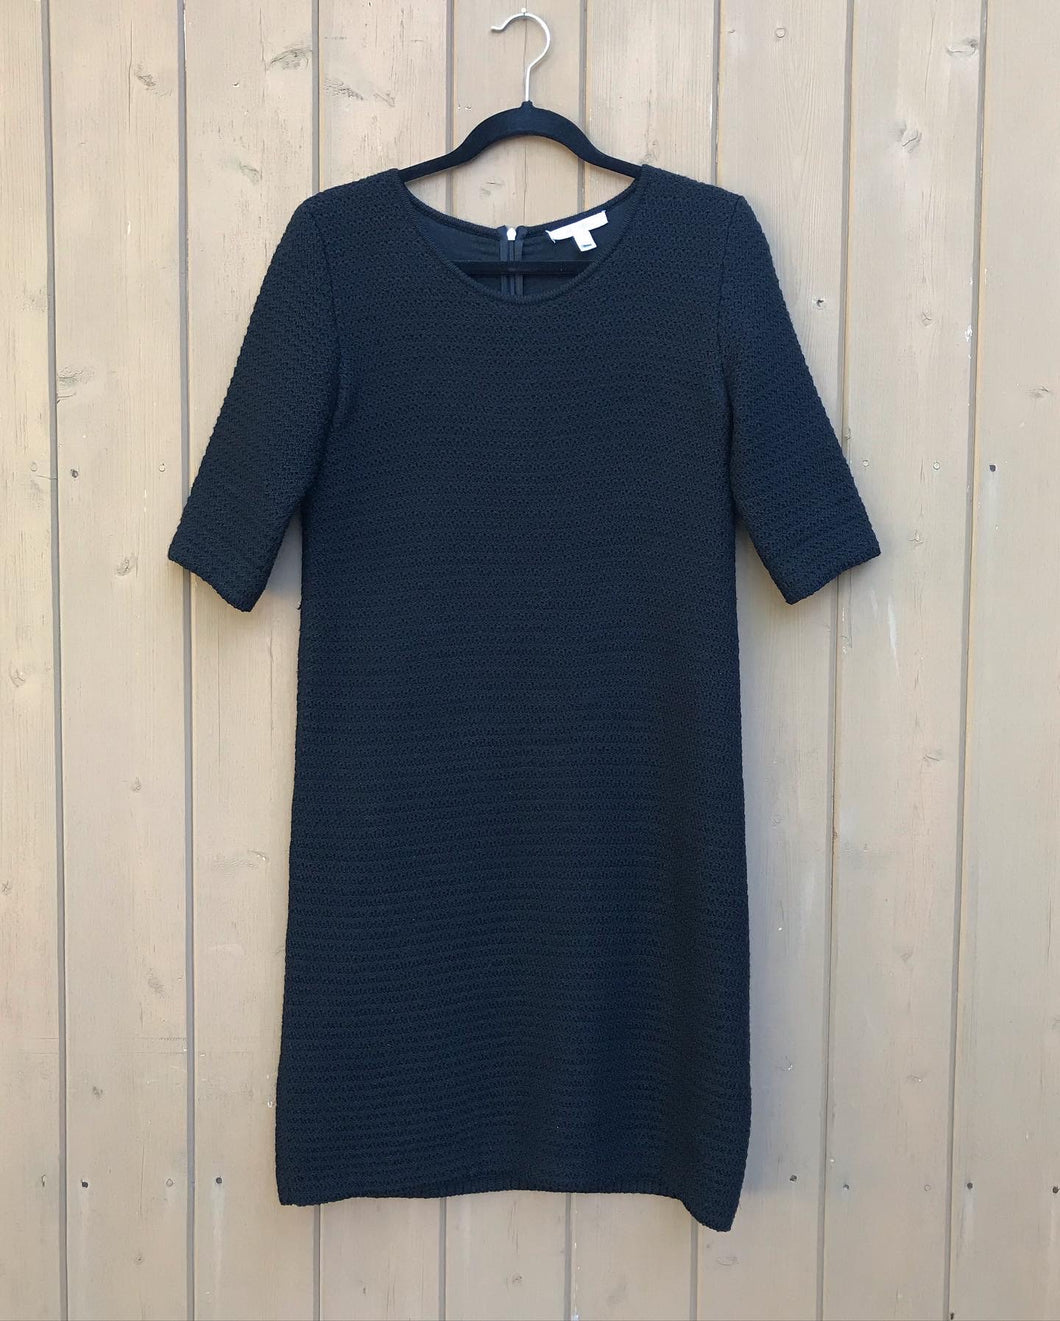 MAX MARA Wool Knit Dress